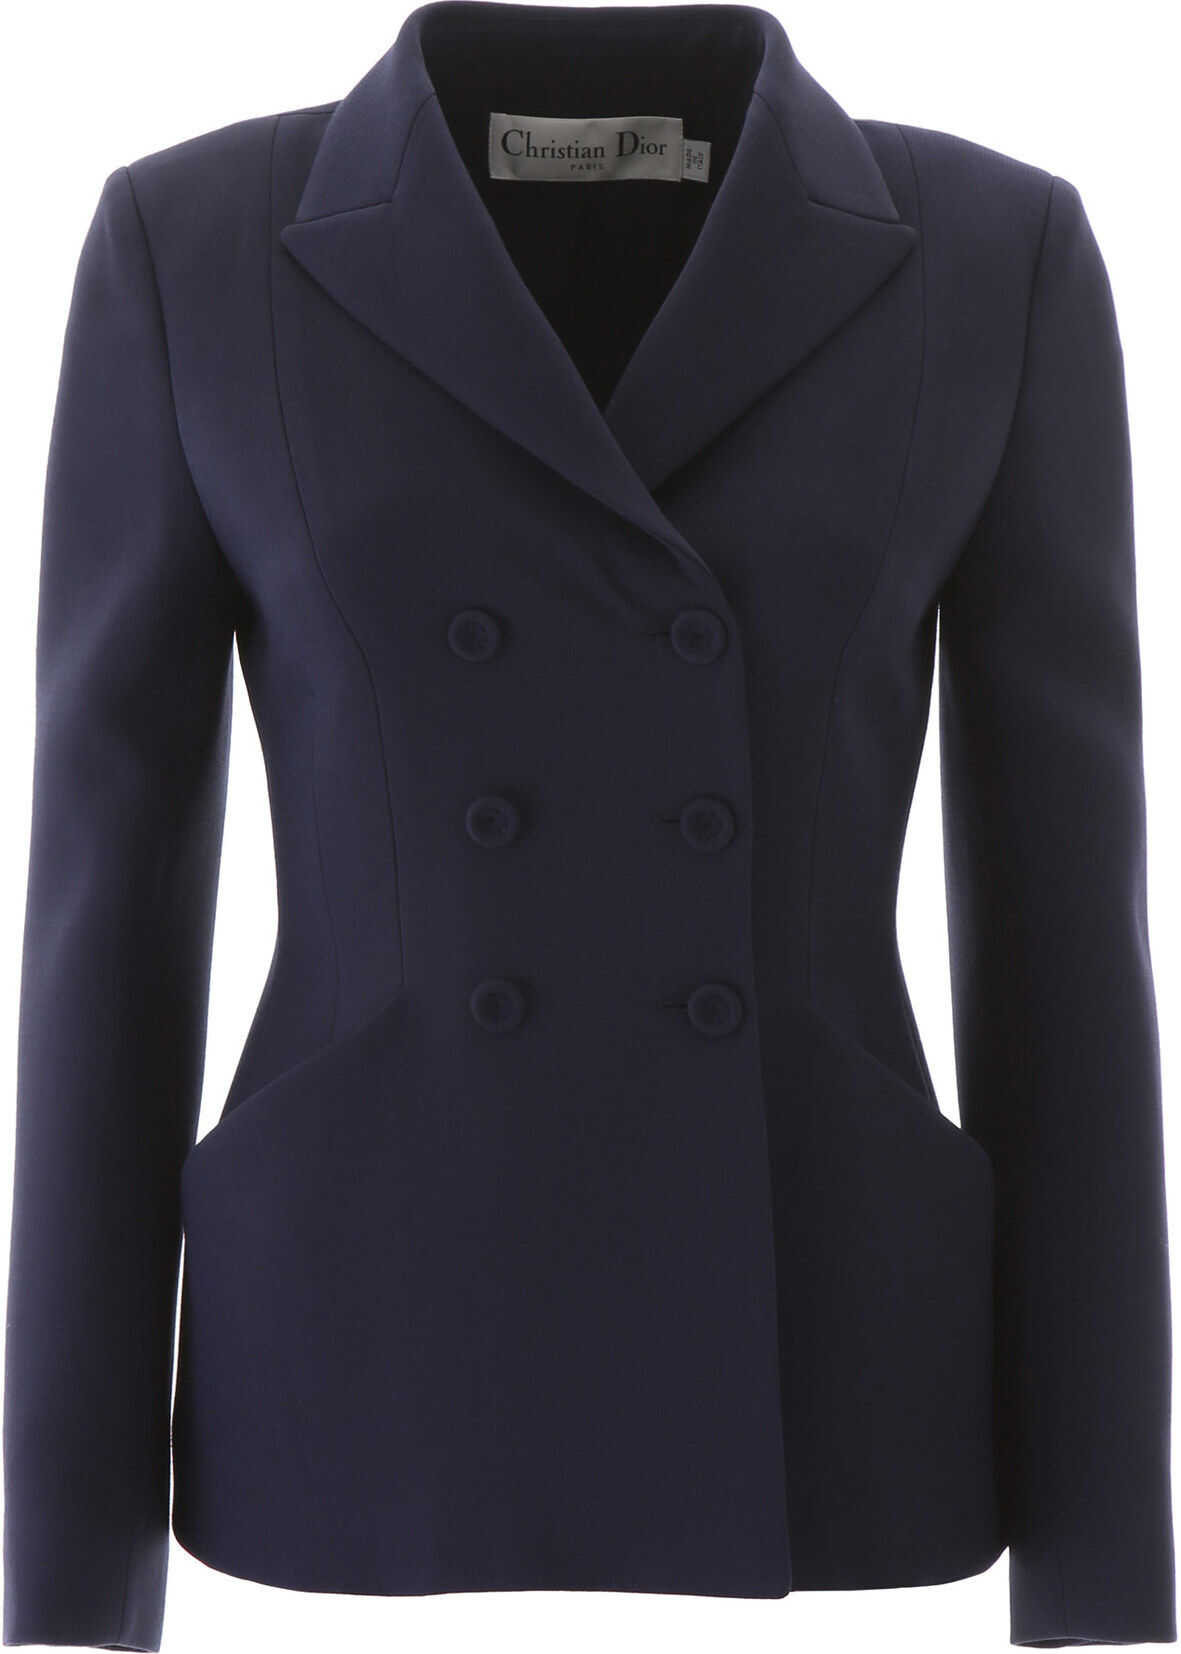 Dior Double-Breasted Blazer BLEU